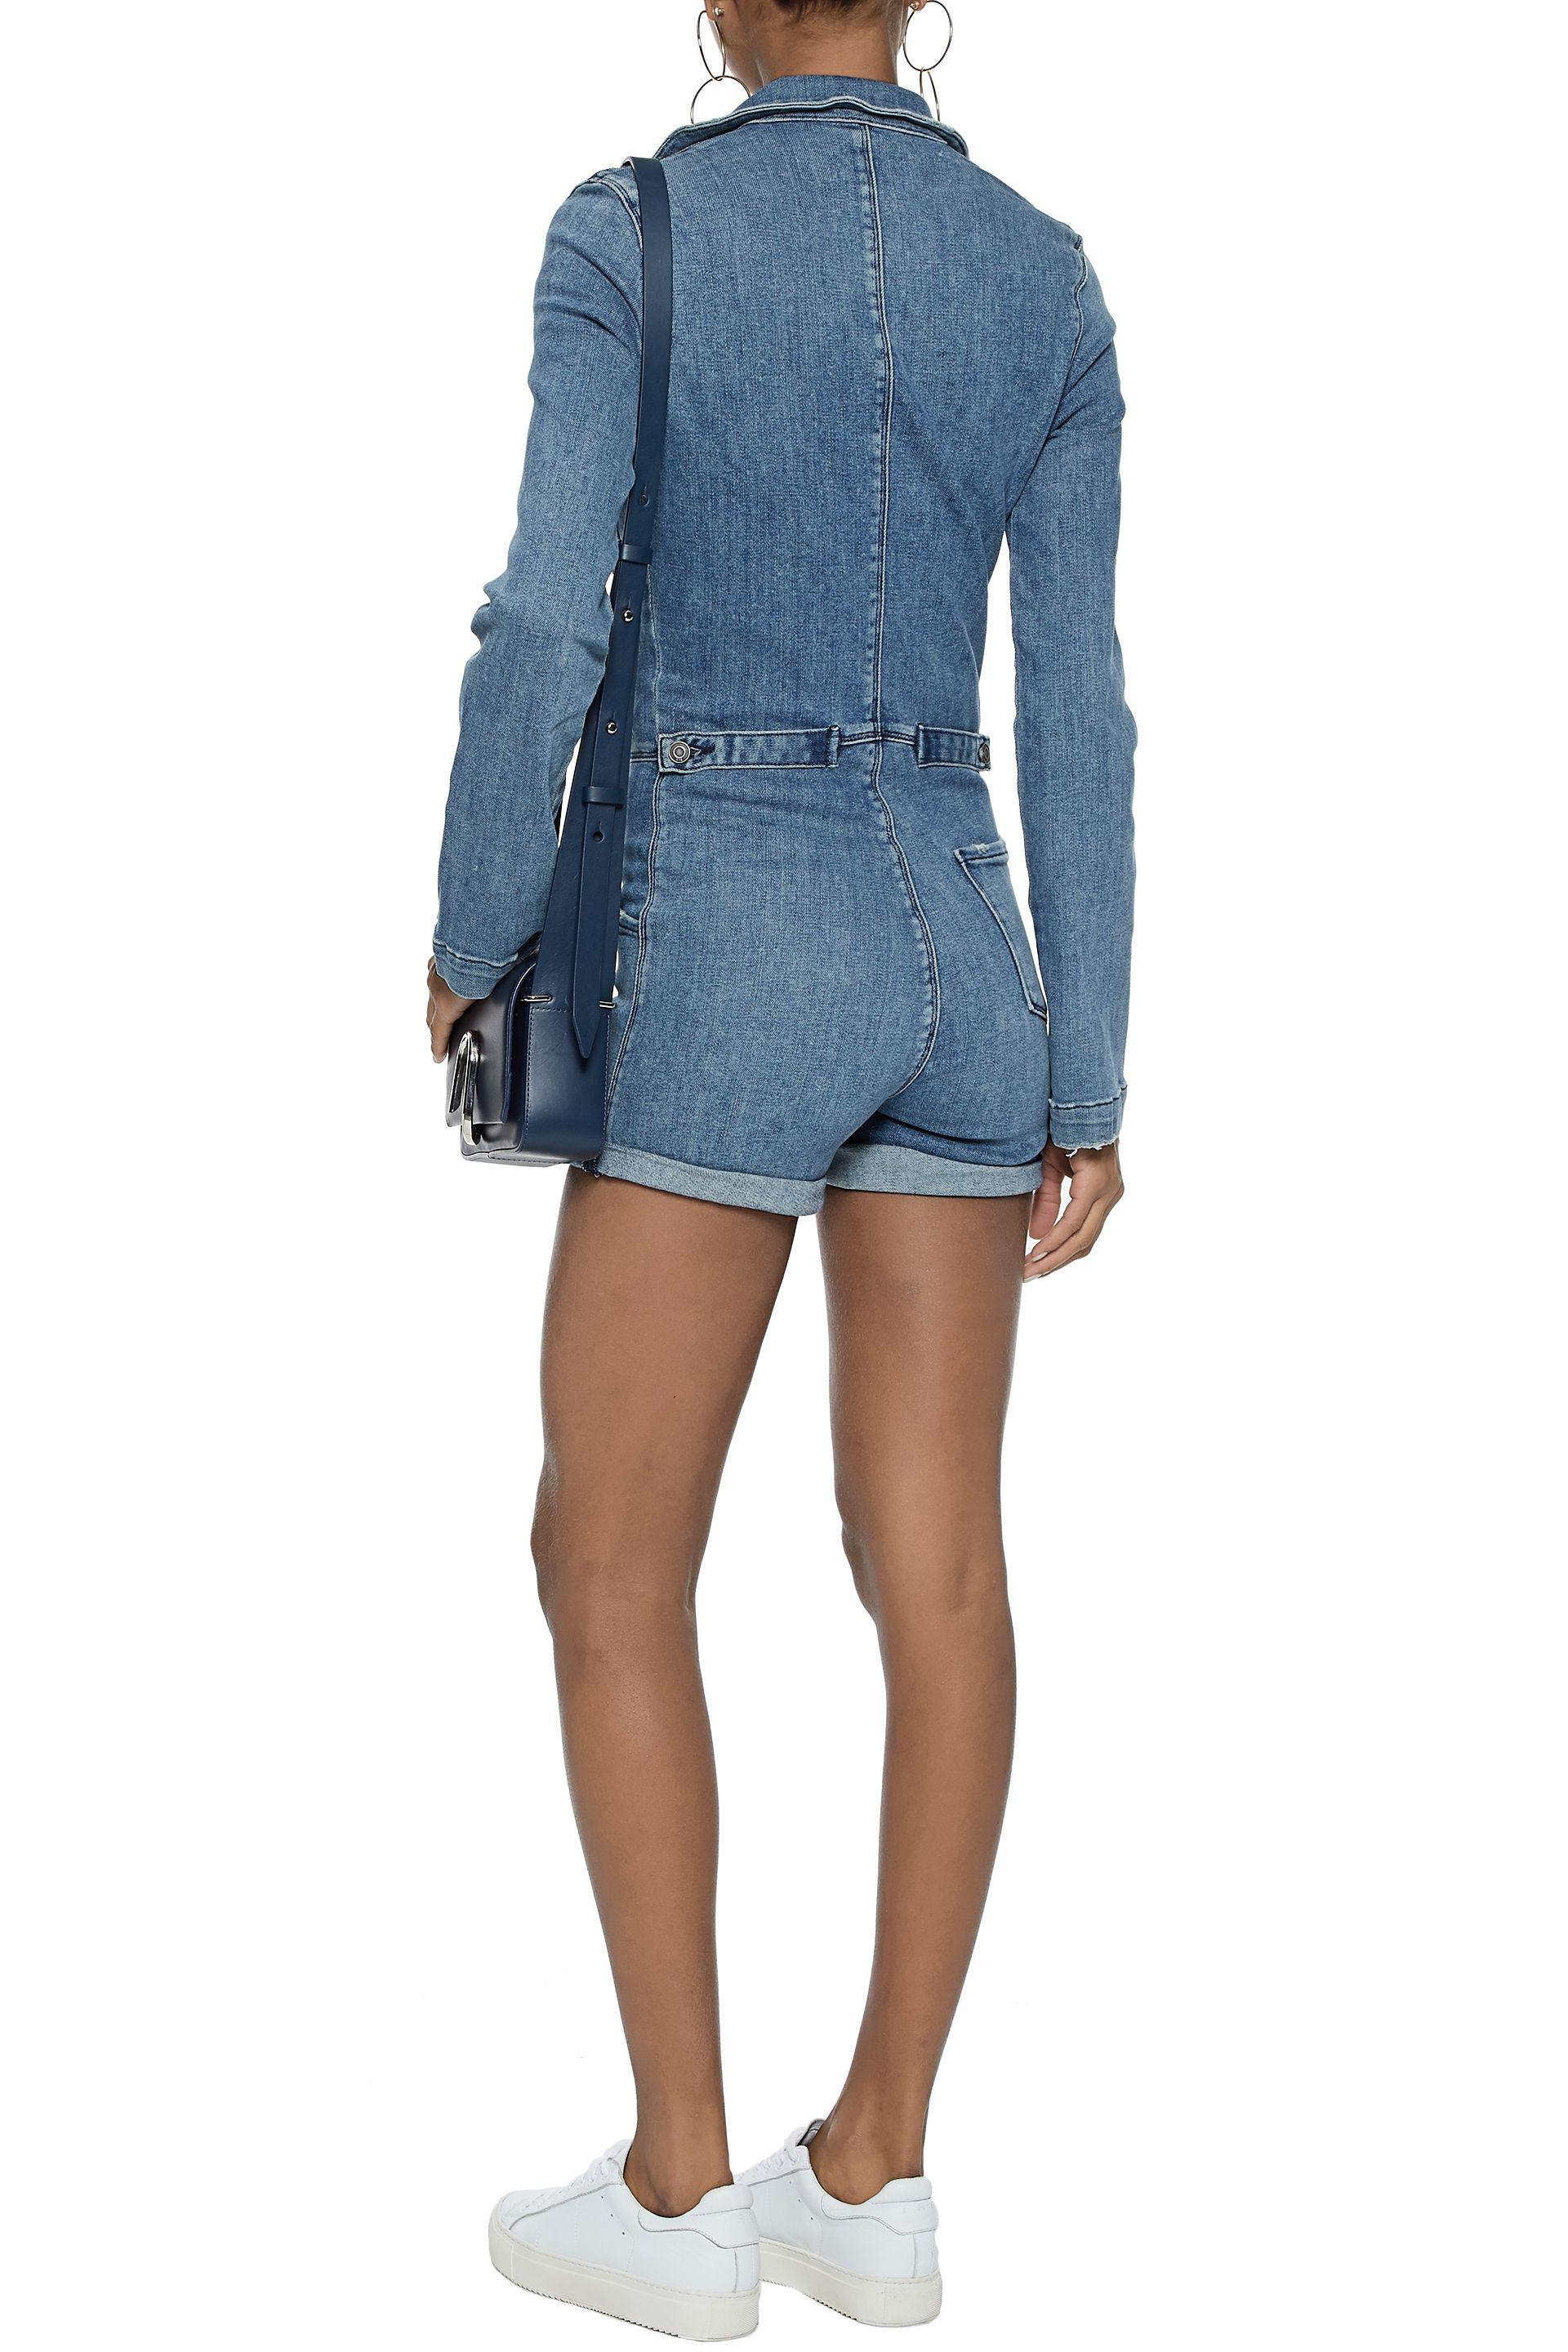 62a21e44ef1 Gallery. Previously sold at  THE OUTNET.COM · Women s Denim Jumpsuits ...